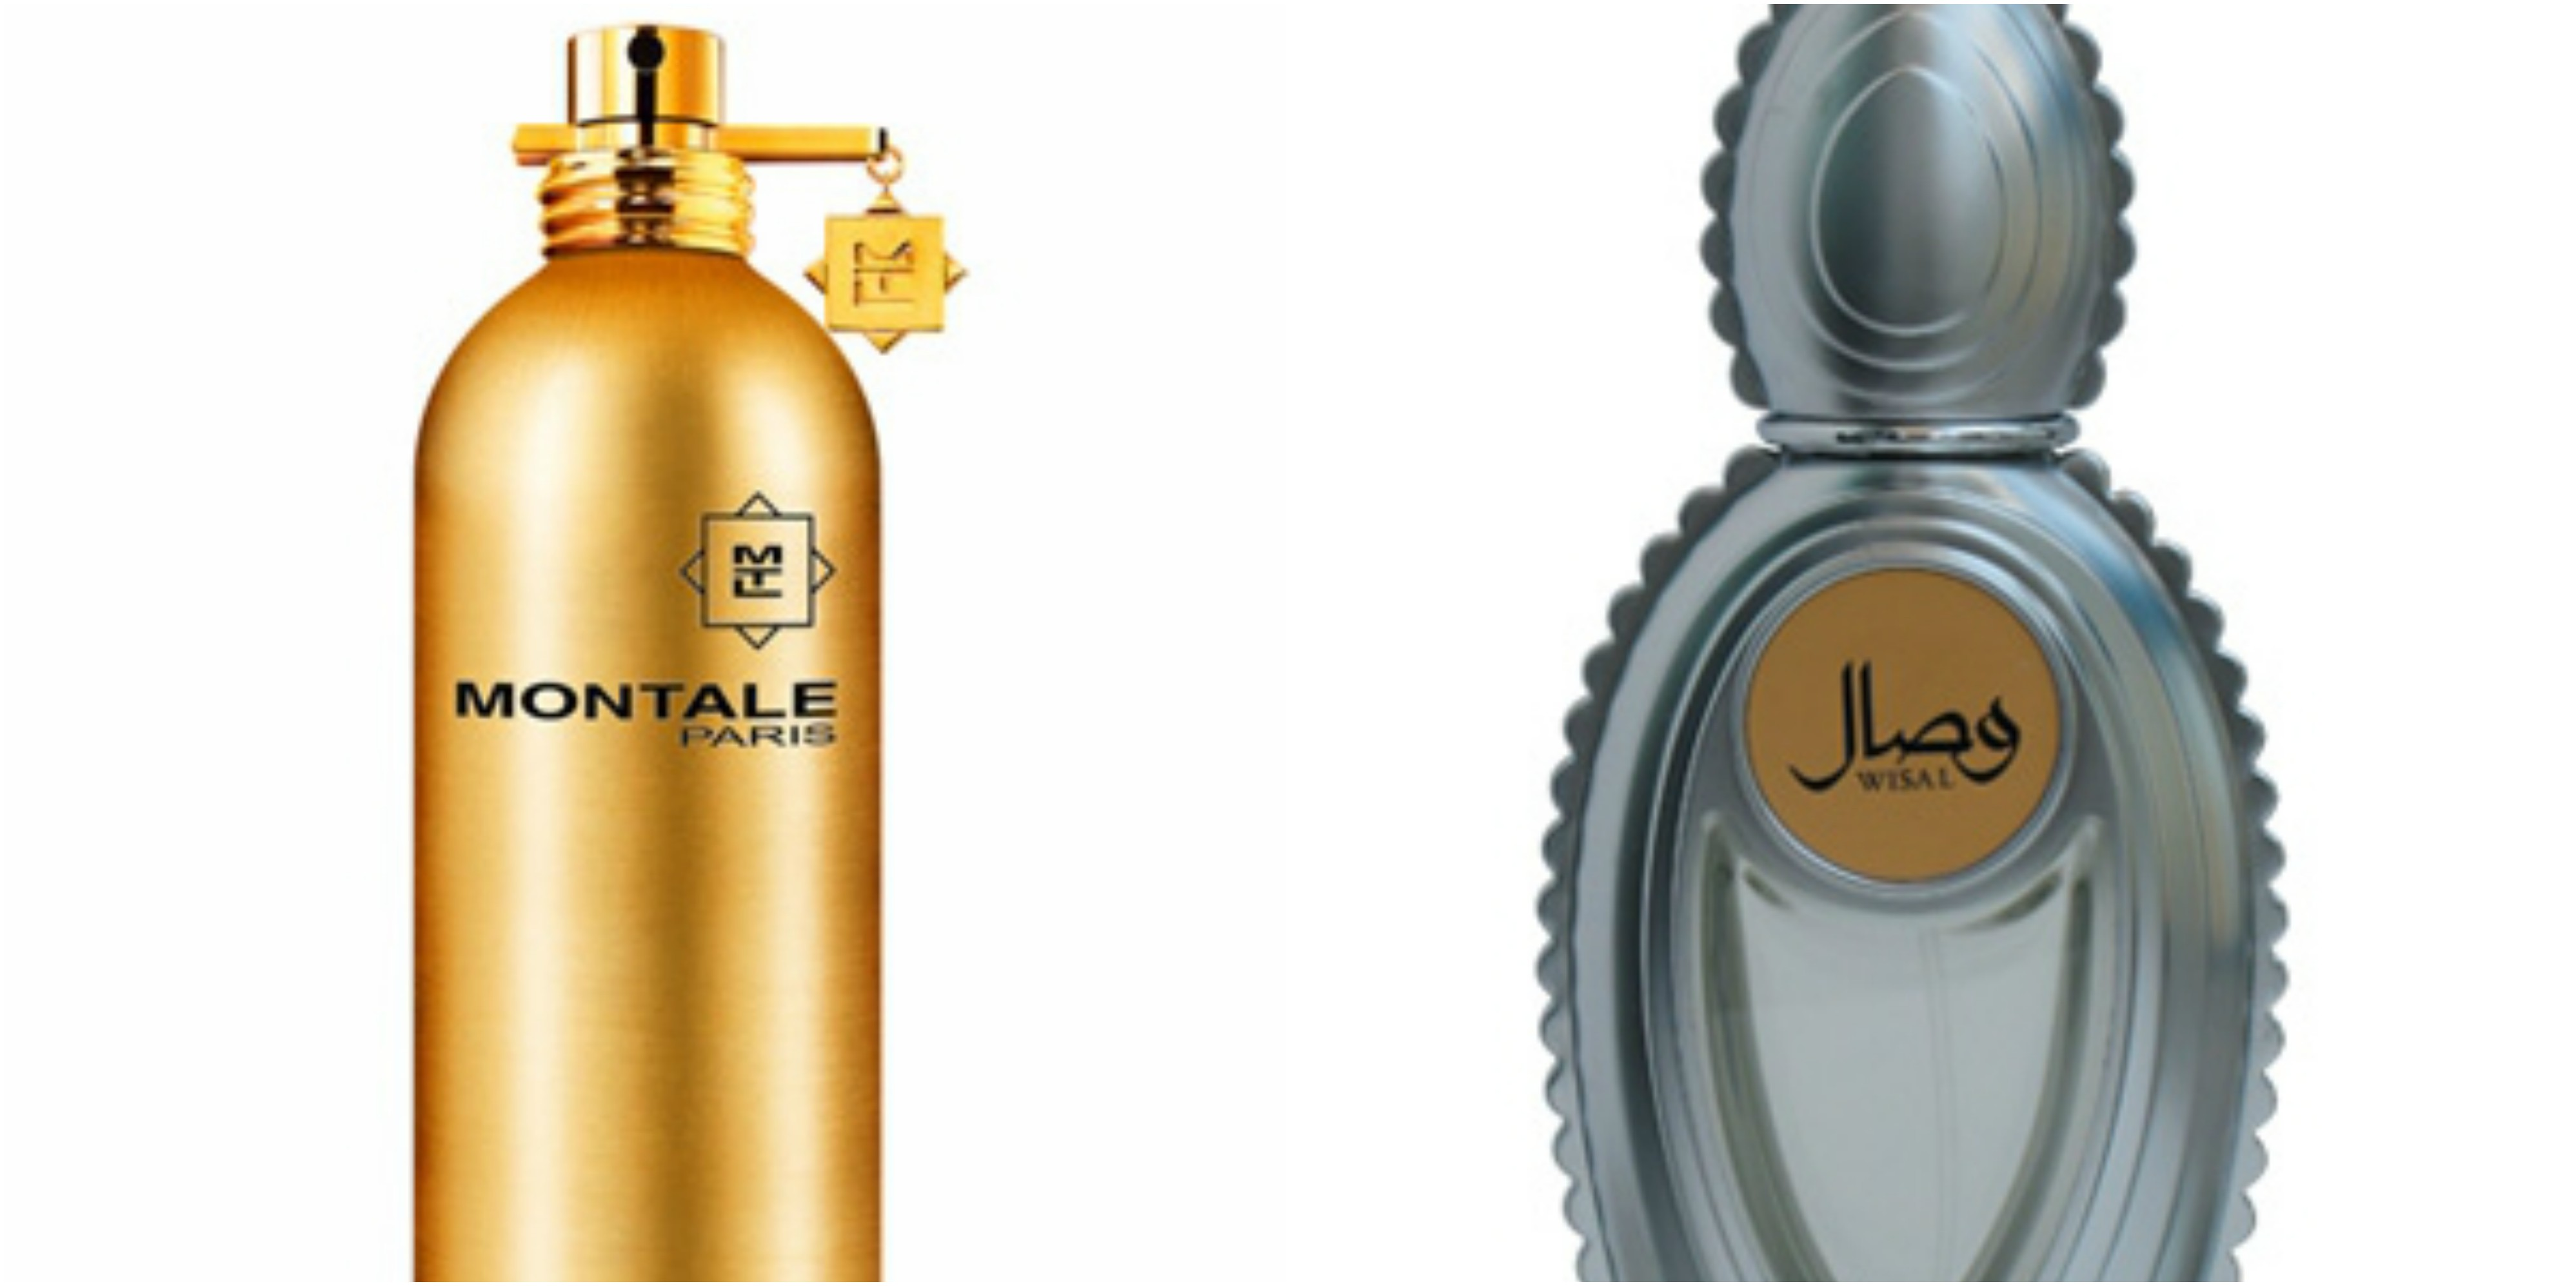 Flacons of Montale Aoud Blossom and Ajmal Wisal